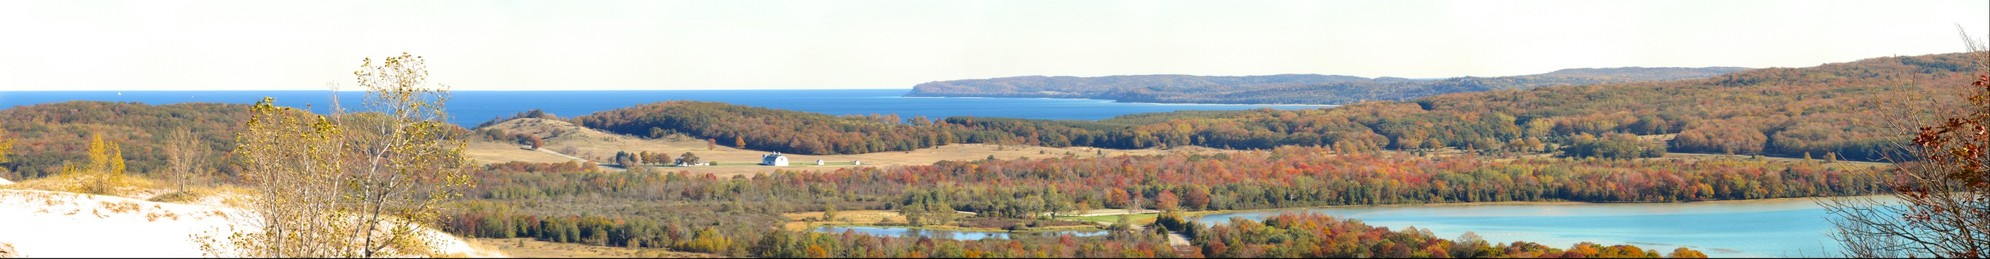 View from the Sleeping Bear Dunes